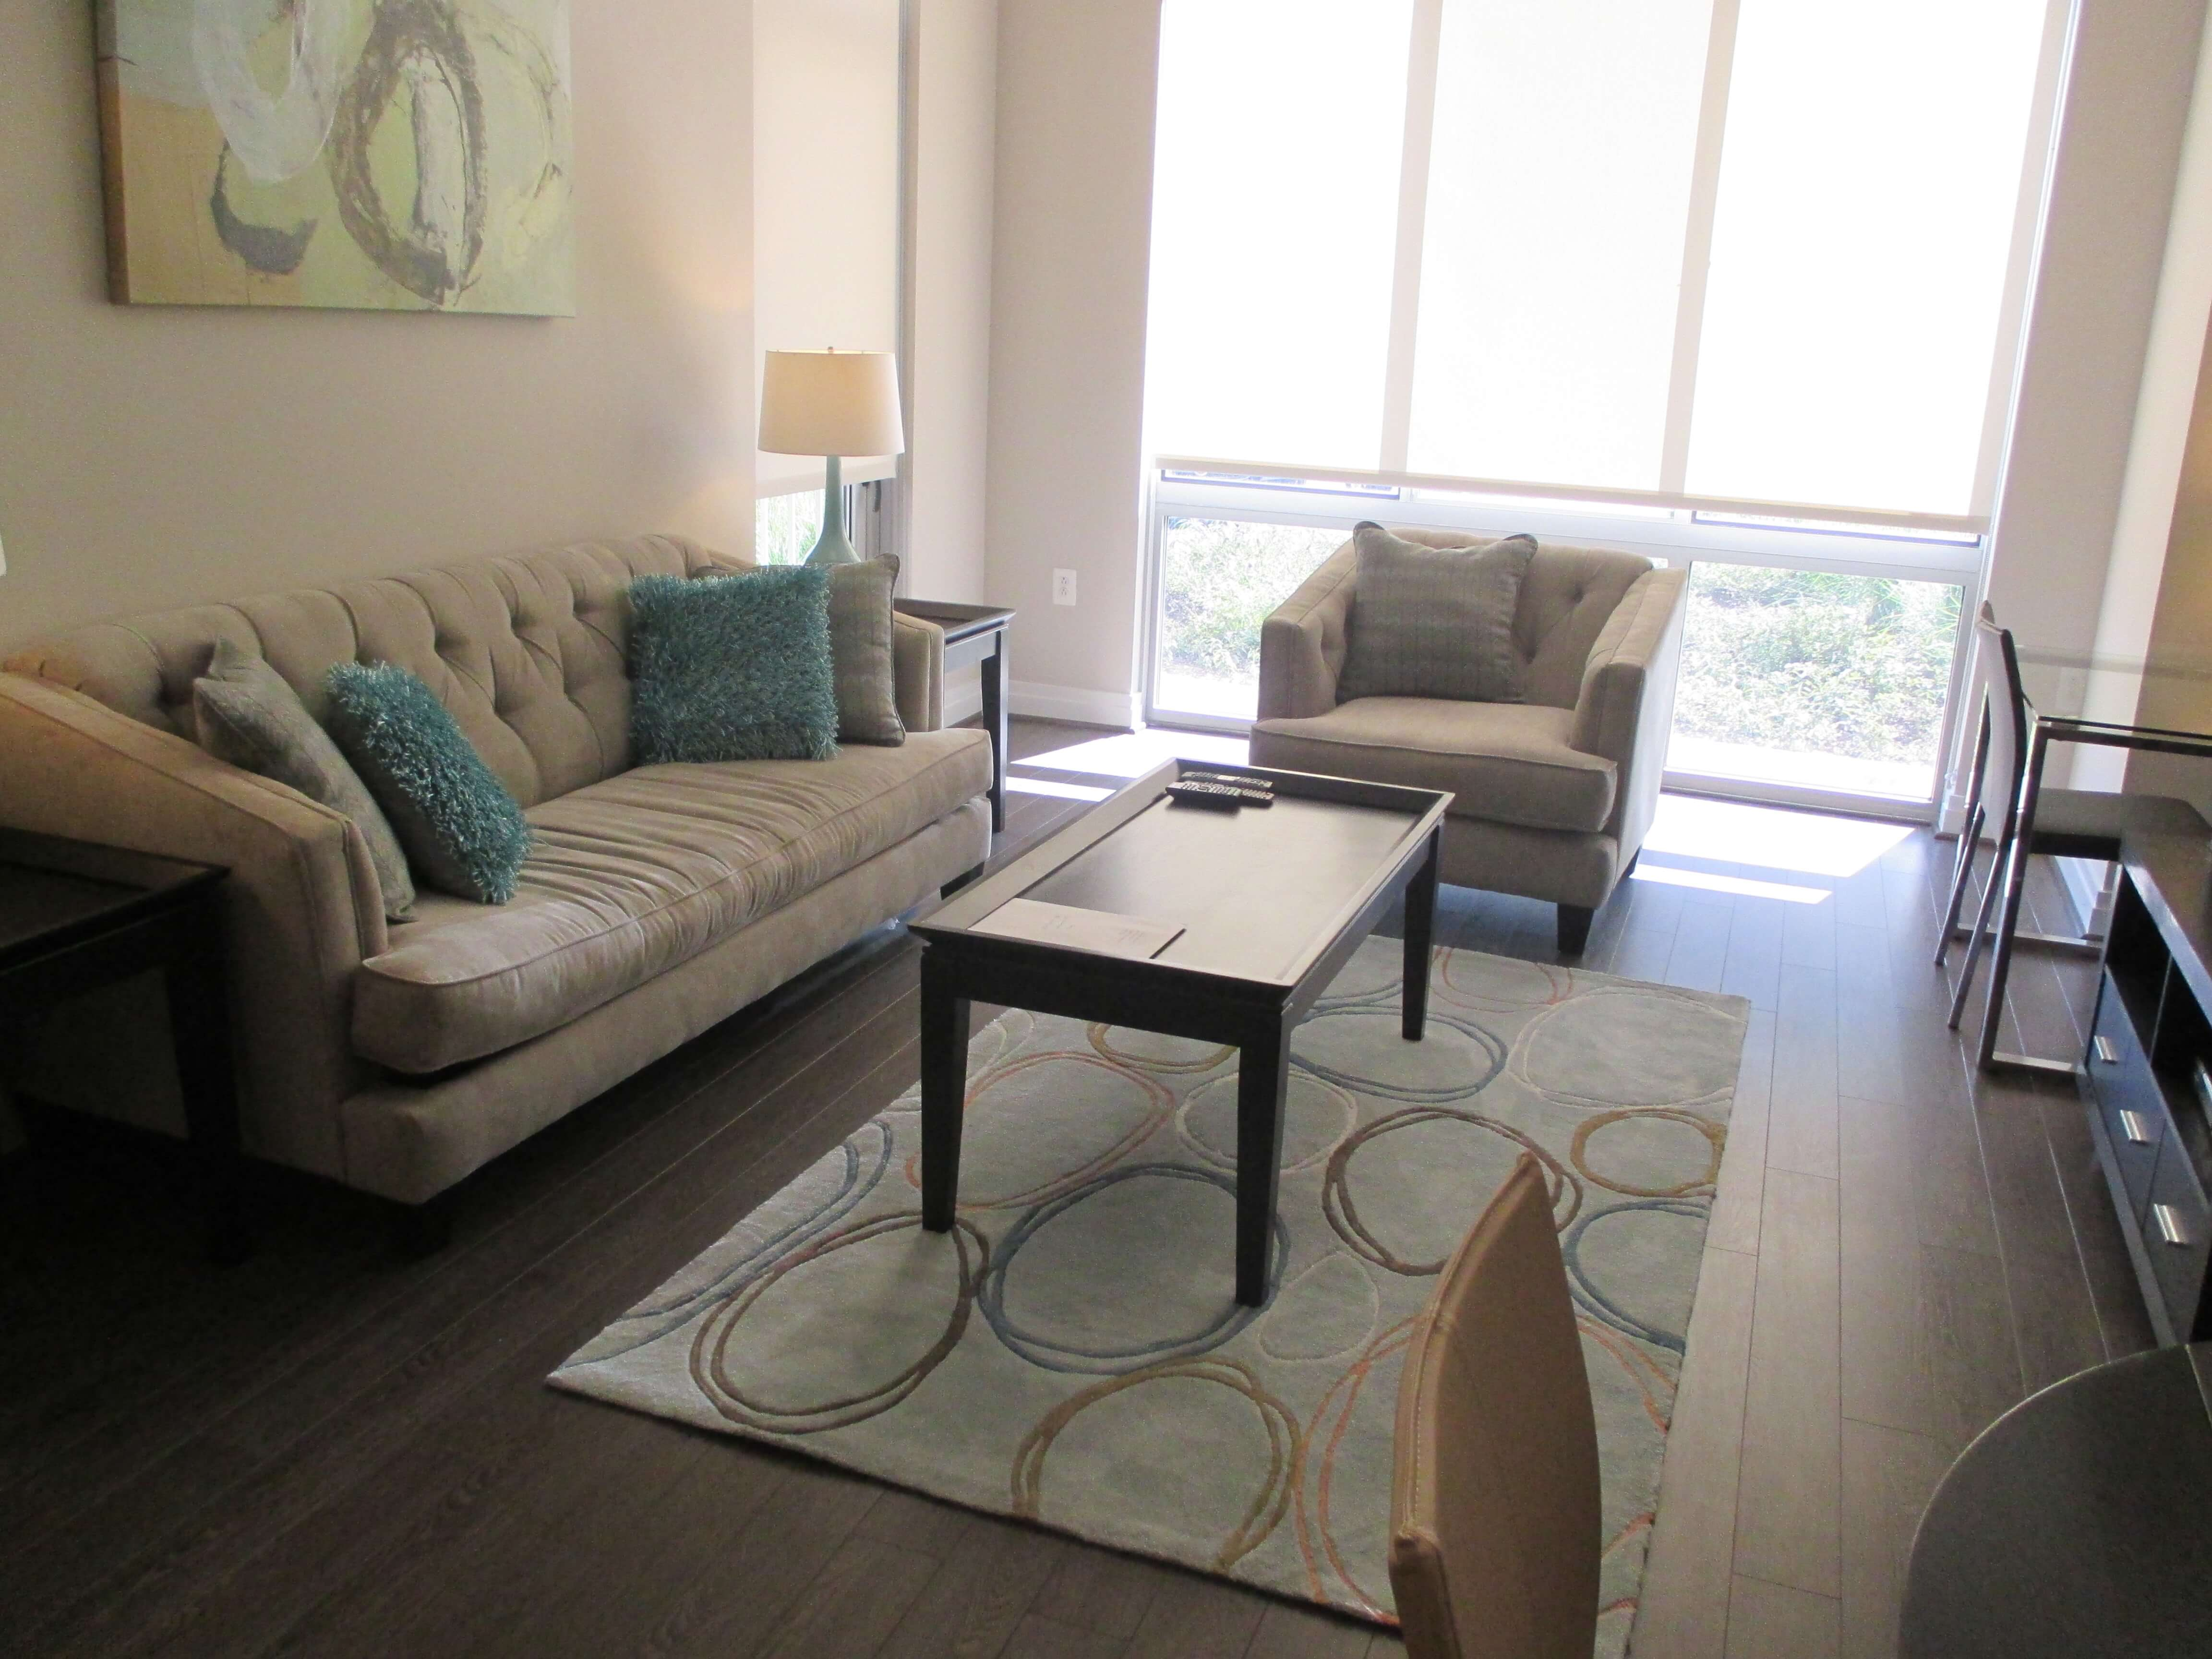 Reston Furnished 1 Bedroom Apartment For Rent 5430 Per Month Rental Id 3172070